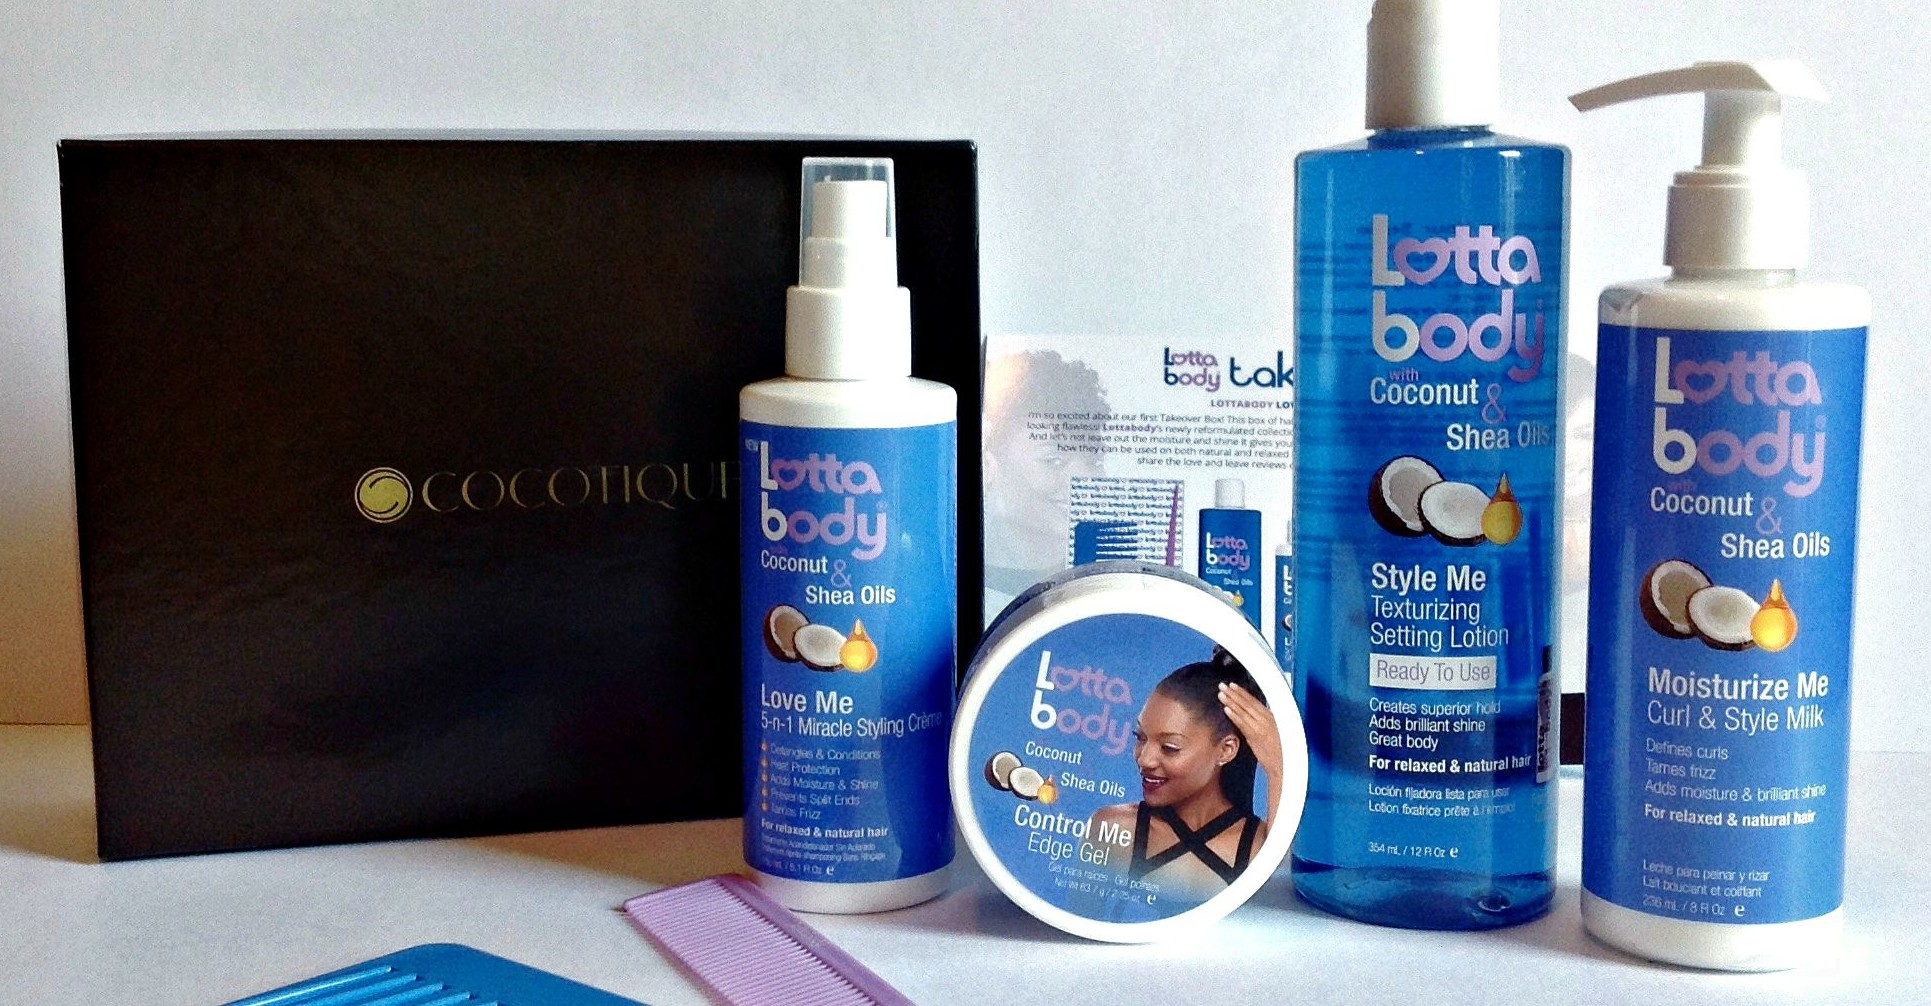 Lottabody Styling Products for Natural and Relaxed Hair